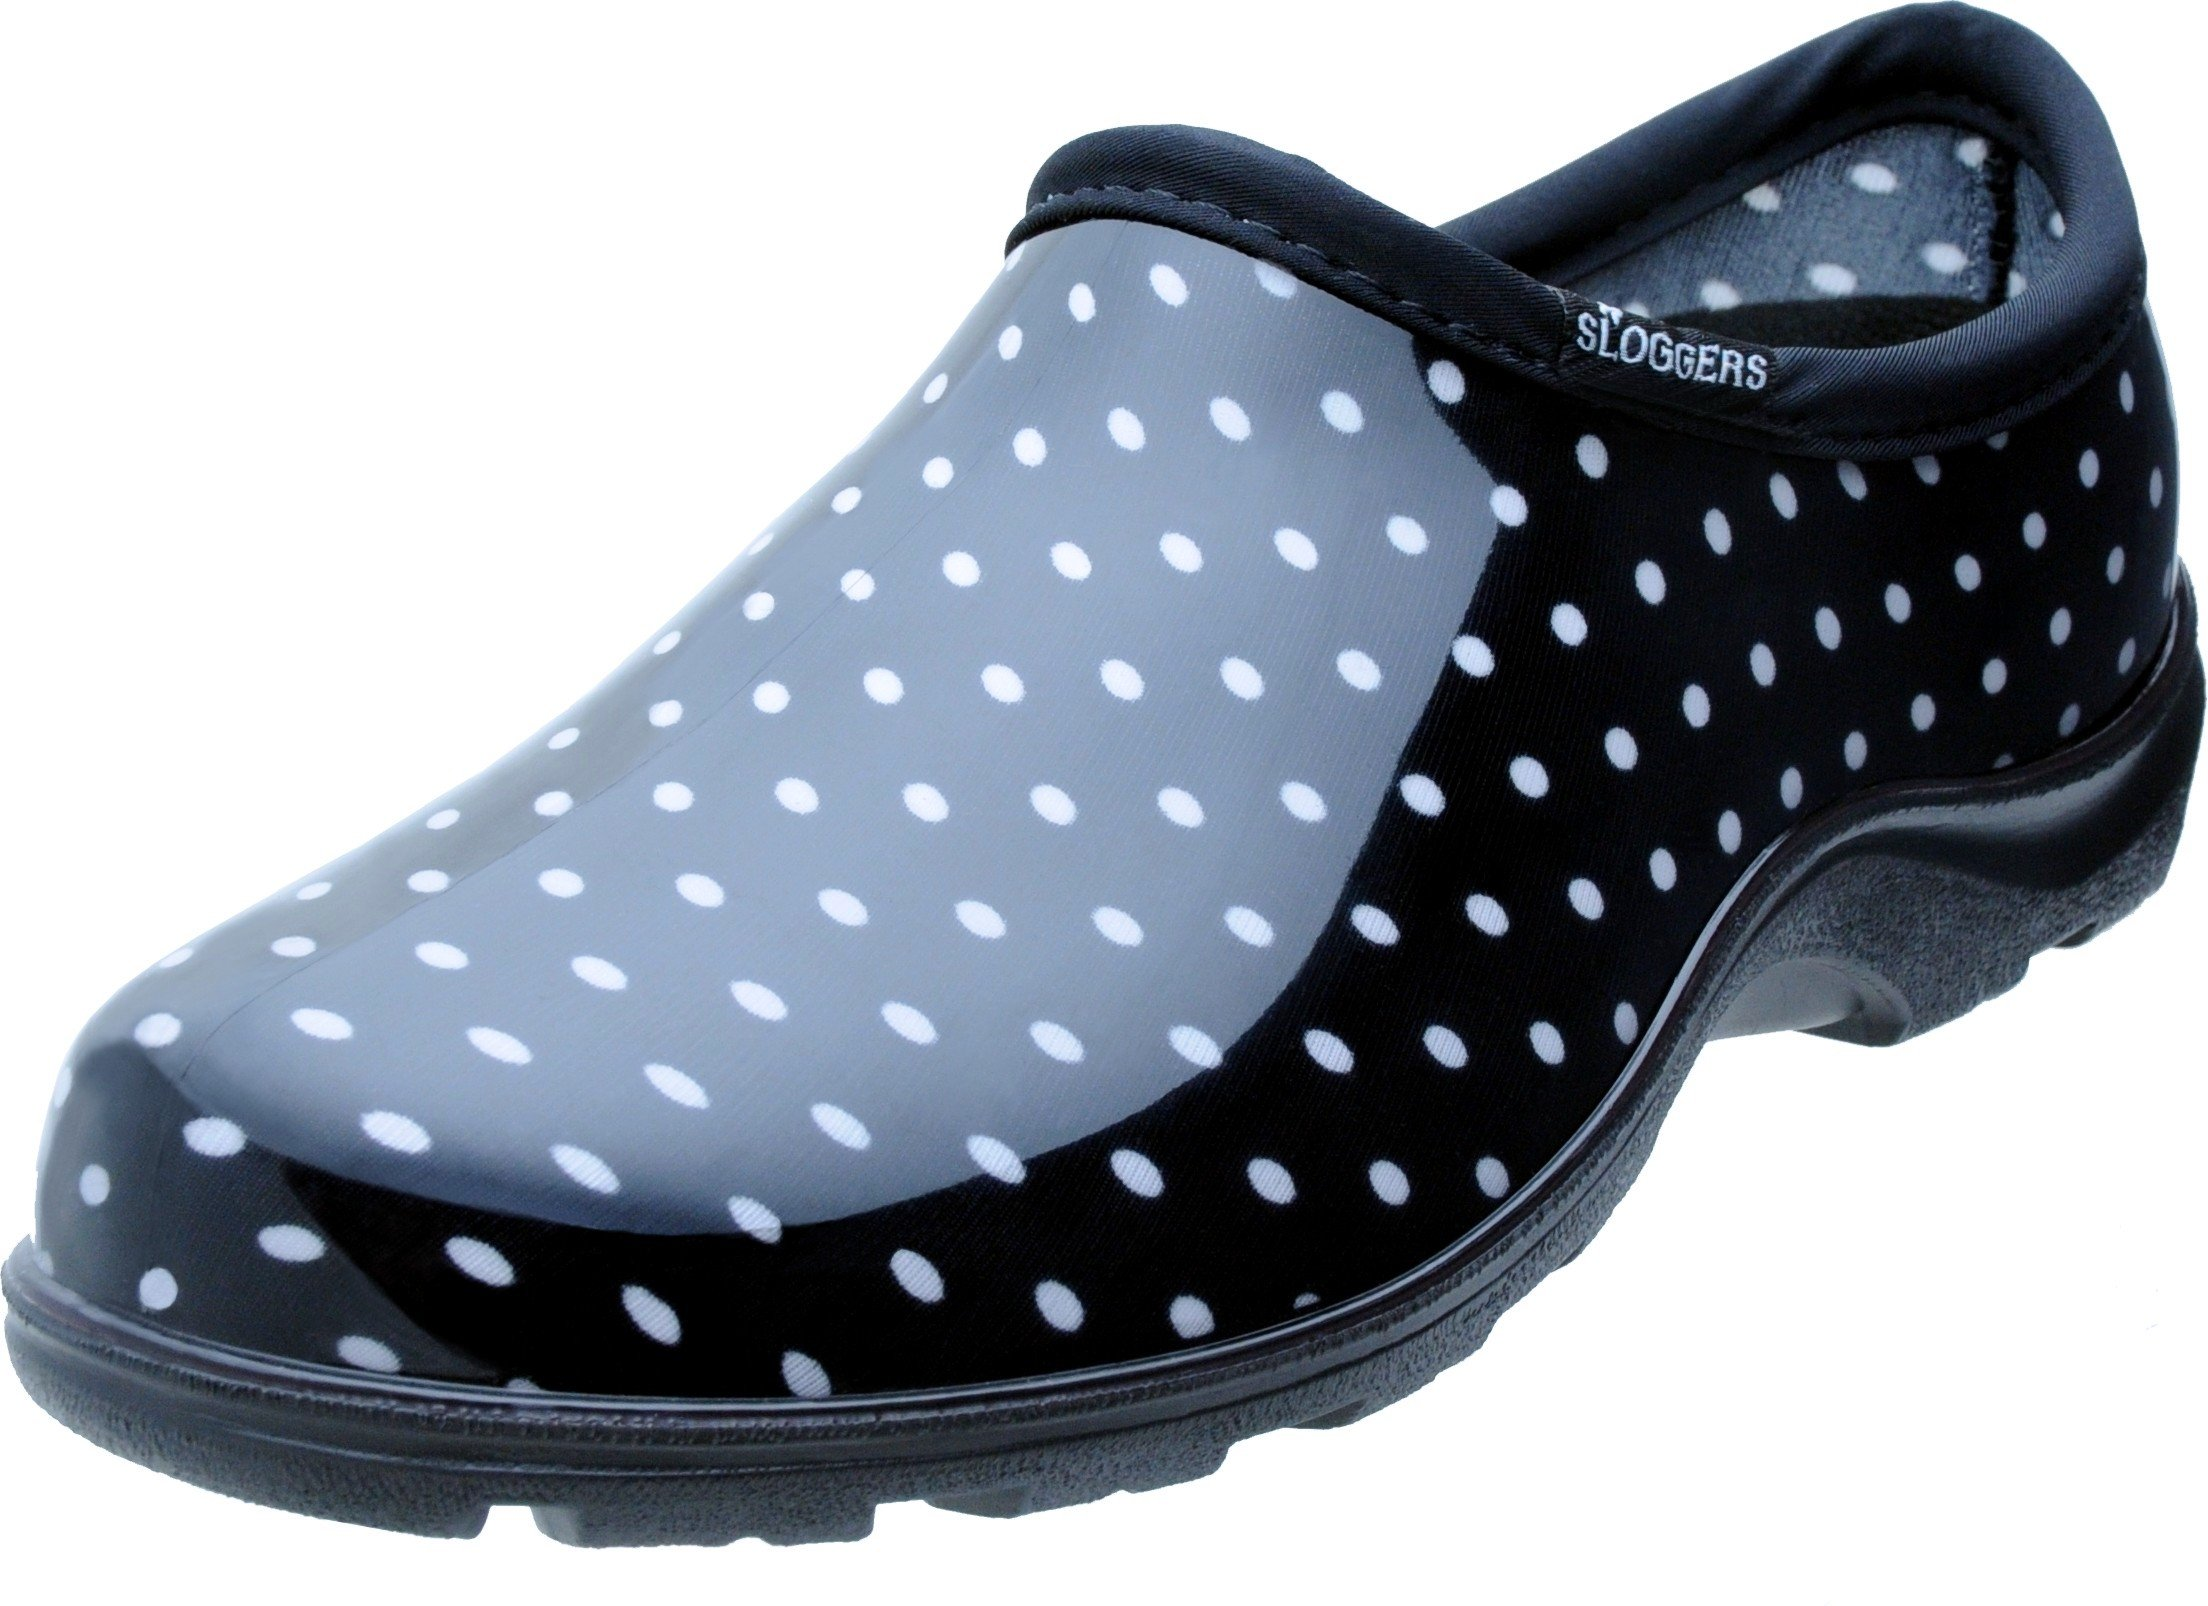 Sloggers 5113BP10 Rain and Garden Shoe with All Day Comfort Insole, Wo's Size 10, Black/White Polka Dot Print